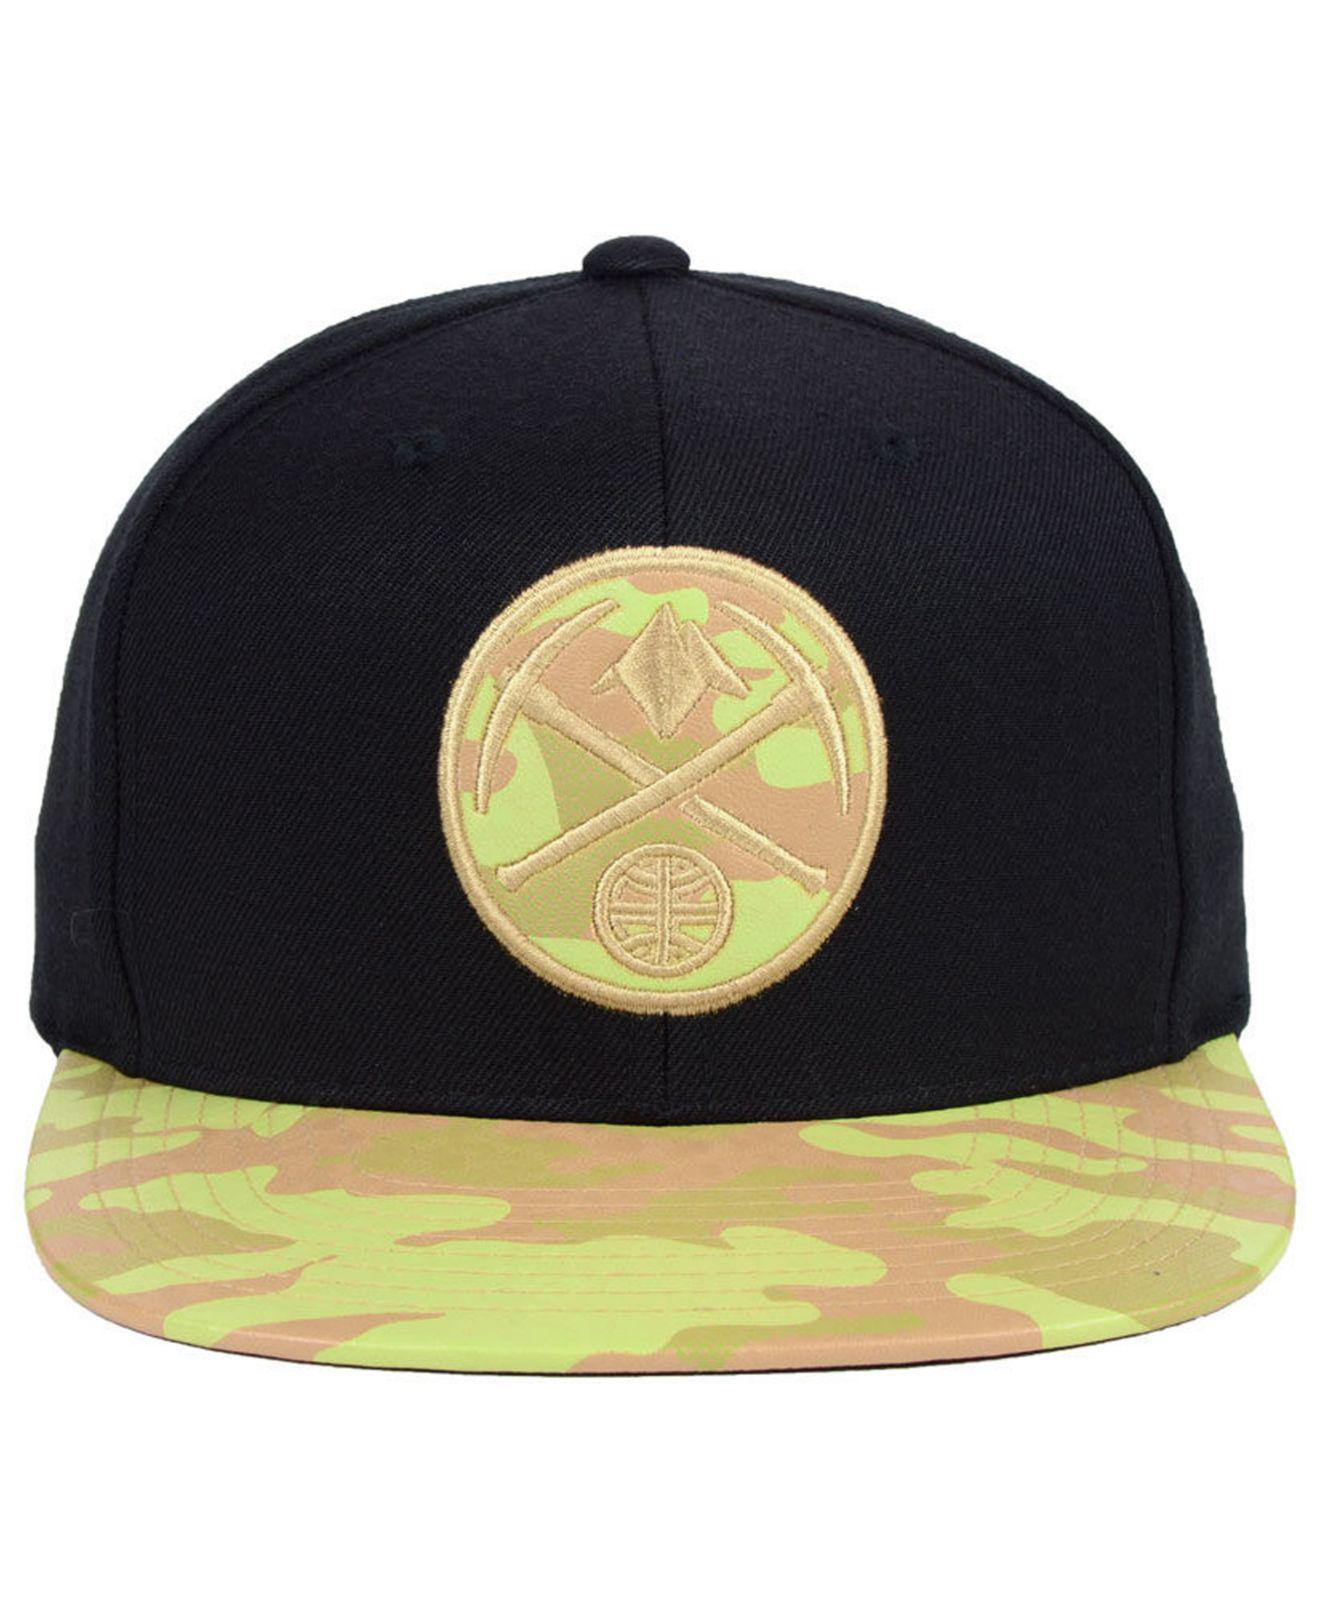 Lyst - Mitchell   Ness Denver Nuggets Natural Camo Snapback Cap in Black  for Men 0fb5dab7dd95